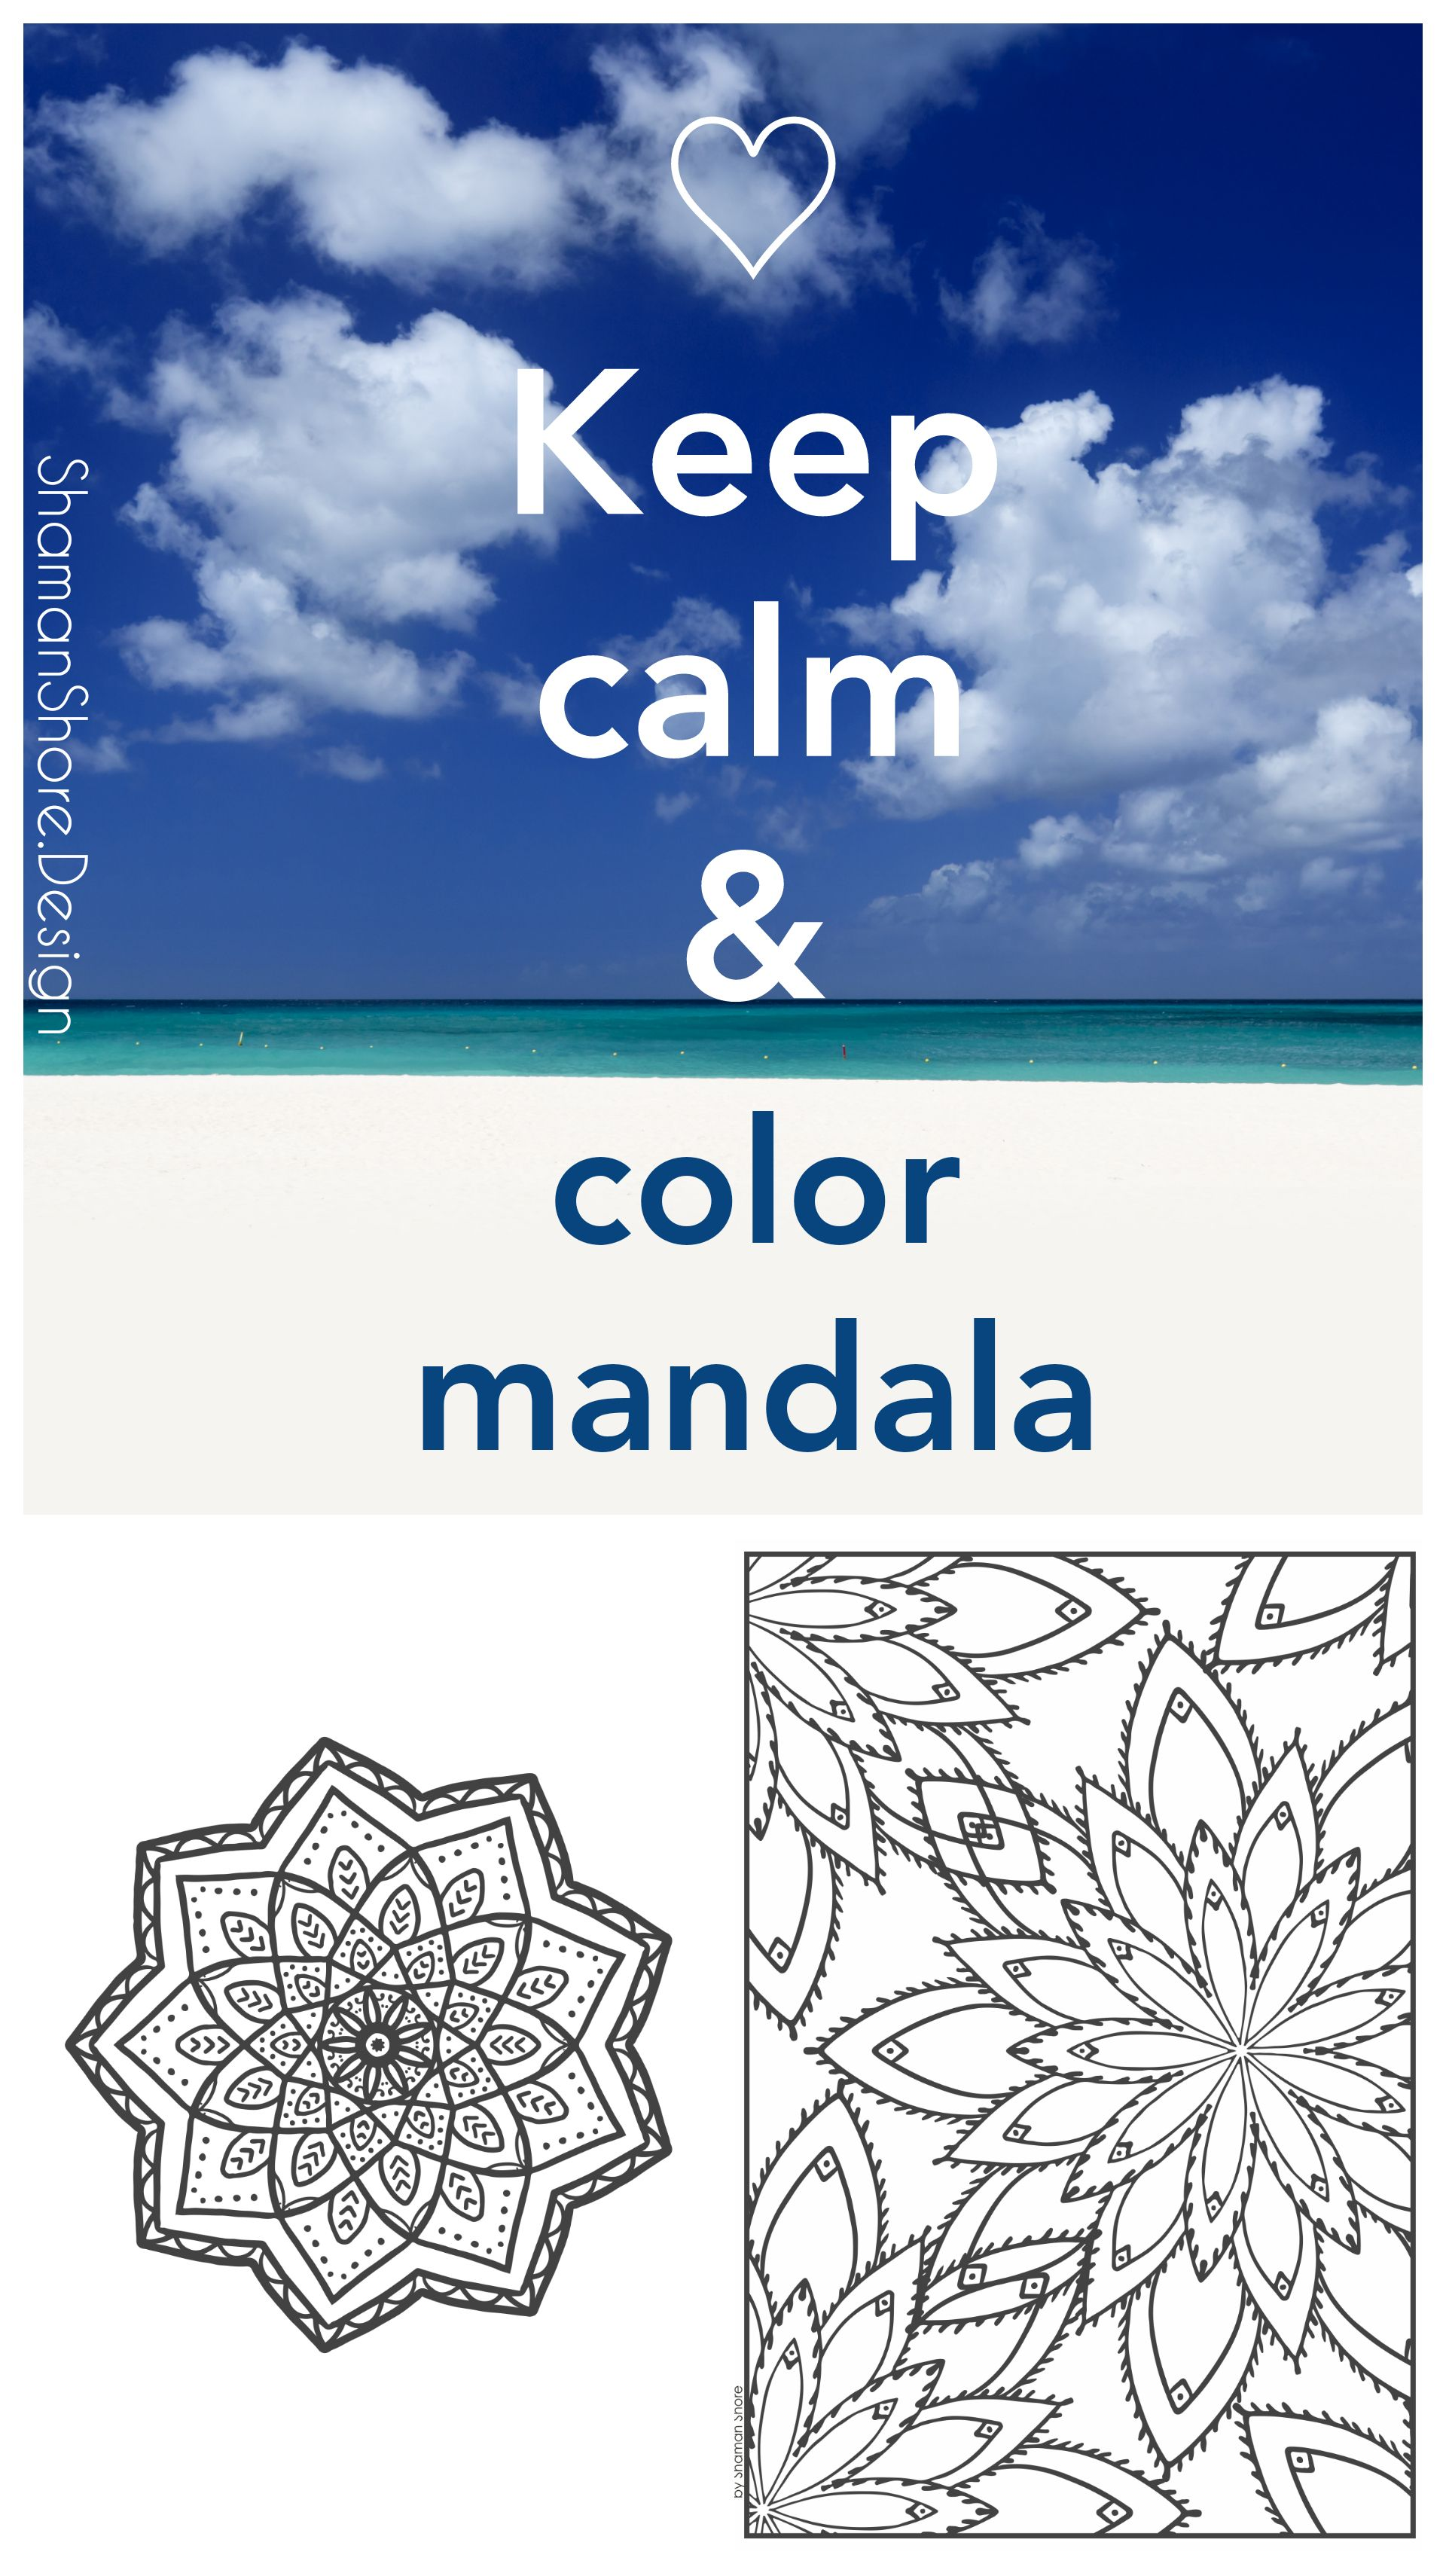 Mandala coloring pages for grown ups   Printable coloring book for adults on Etsy, Mandalas   Coloring as a new form of meditation, Anti-stress coloring  #ShShPrintables